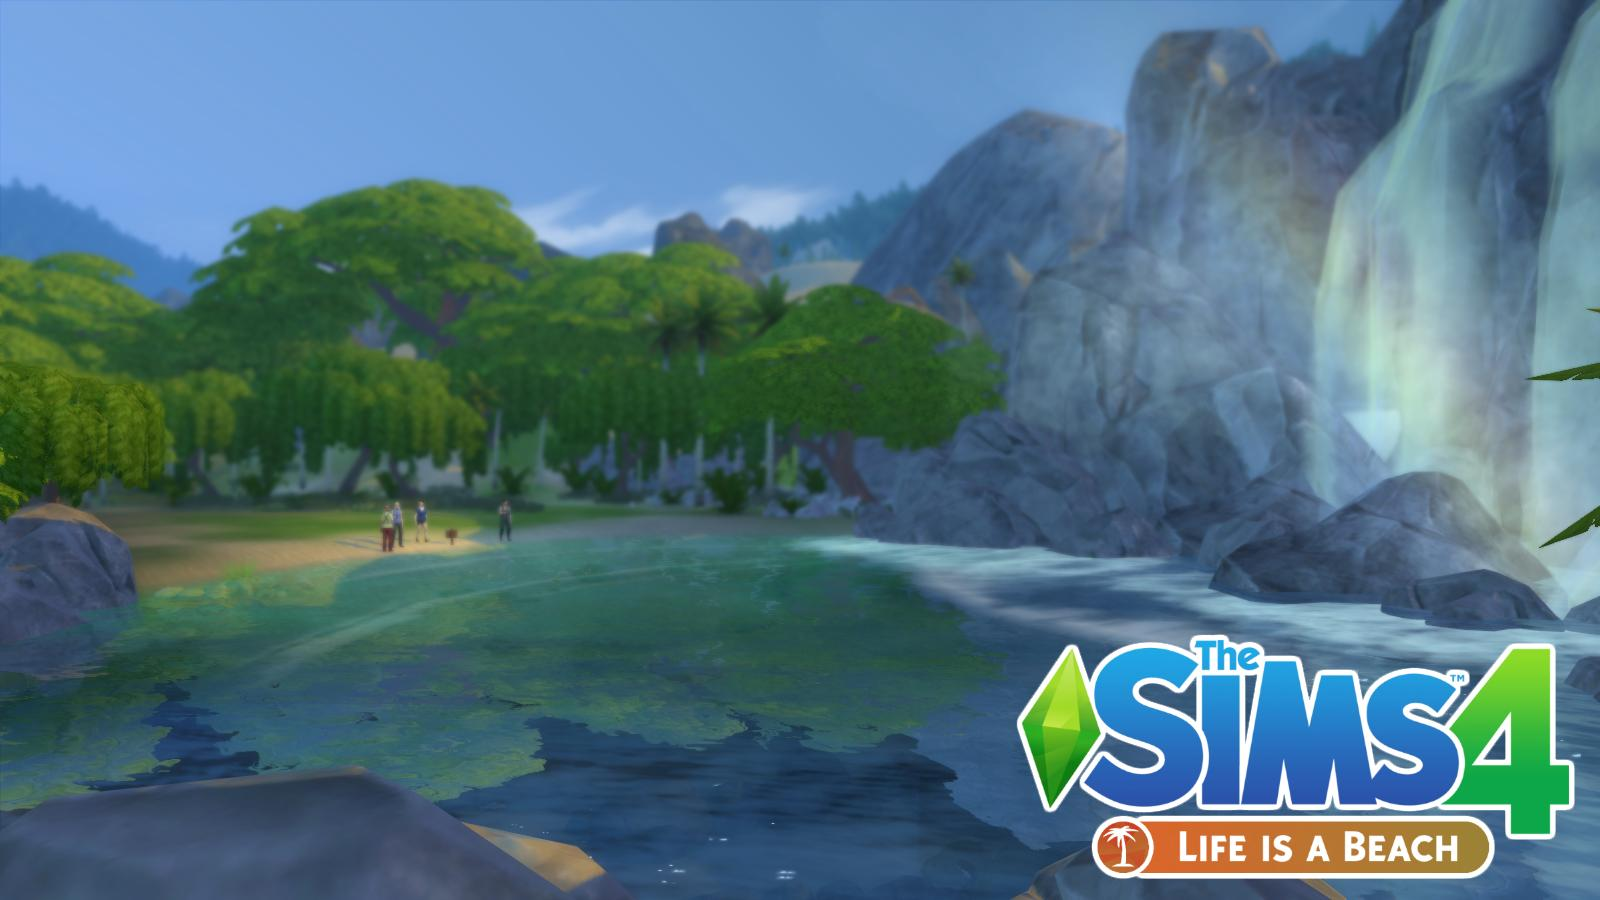 0f9e8c8e206 TheSims4.it - Community Italiana dedicata a The Sims 4